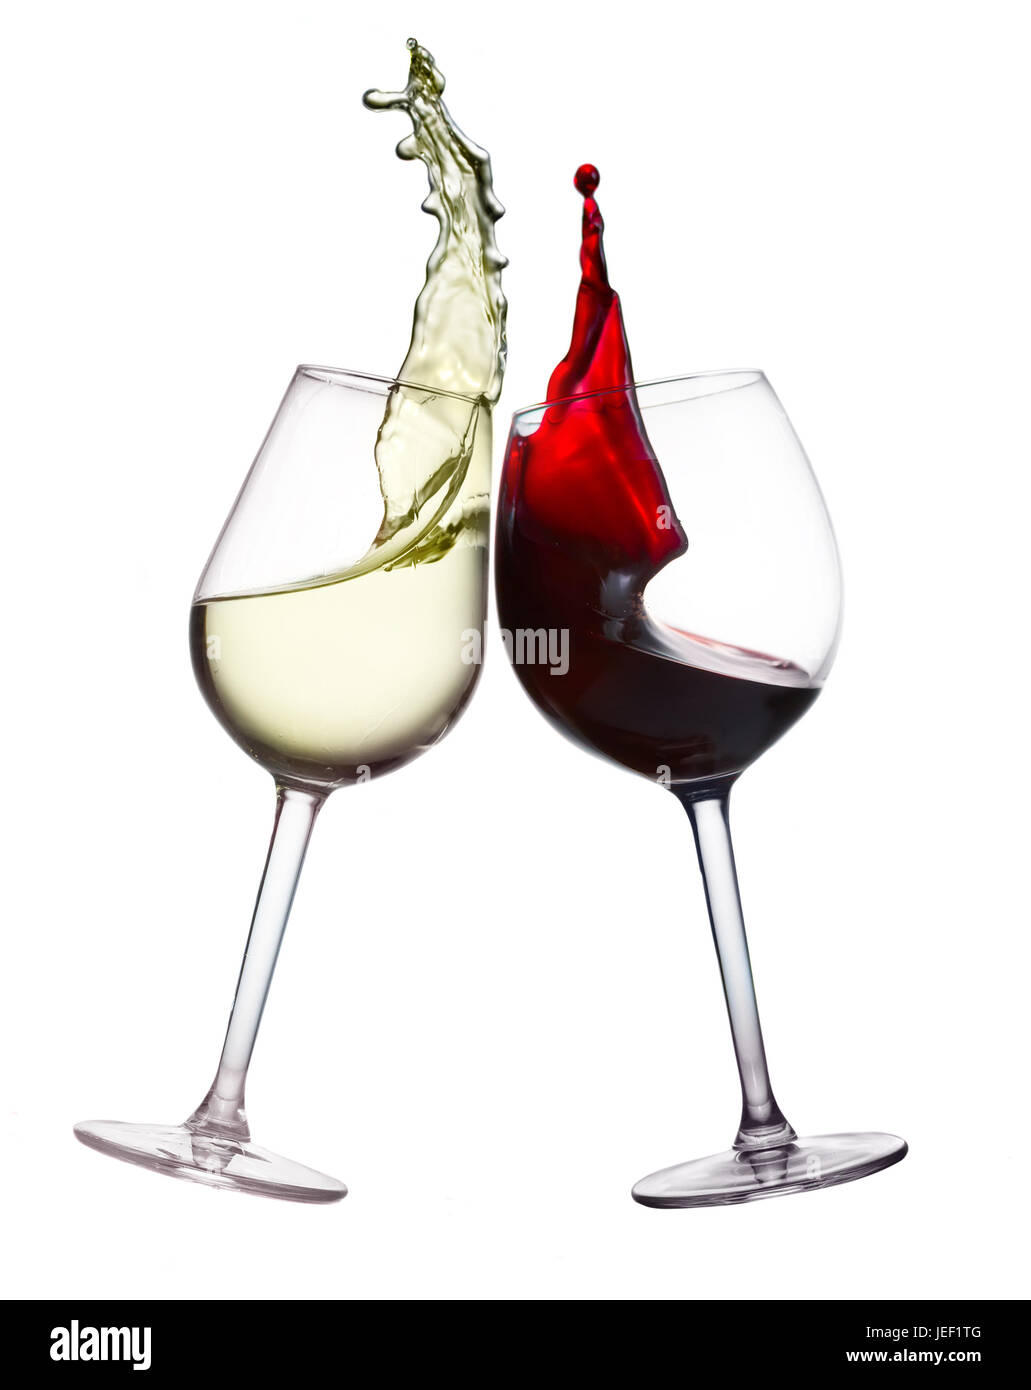 How Many Glasses Of Wine